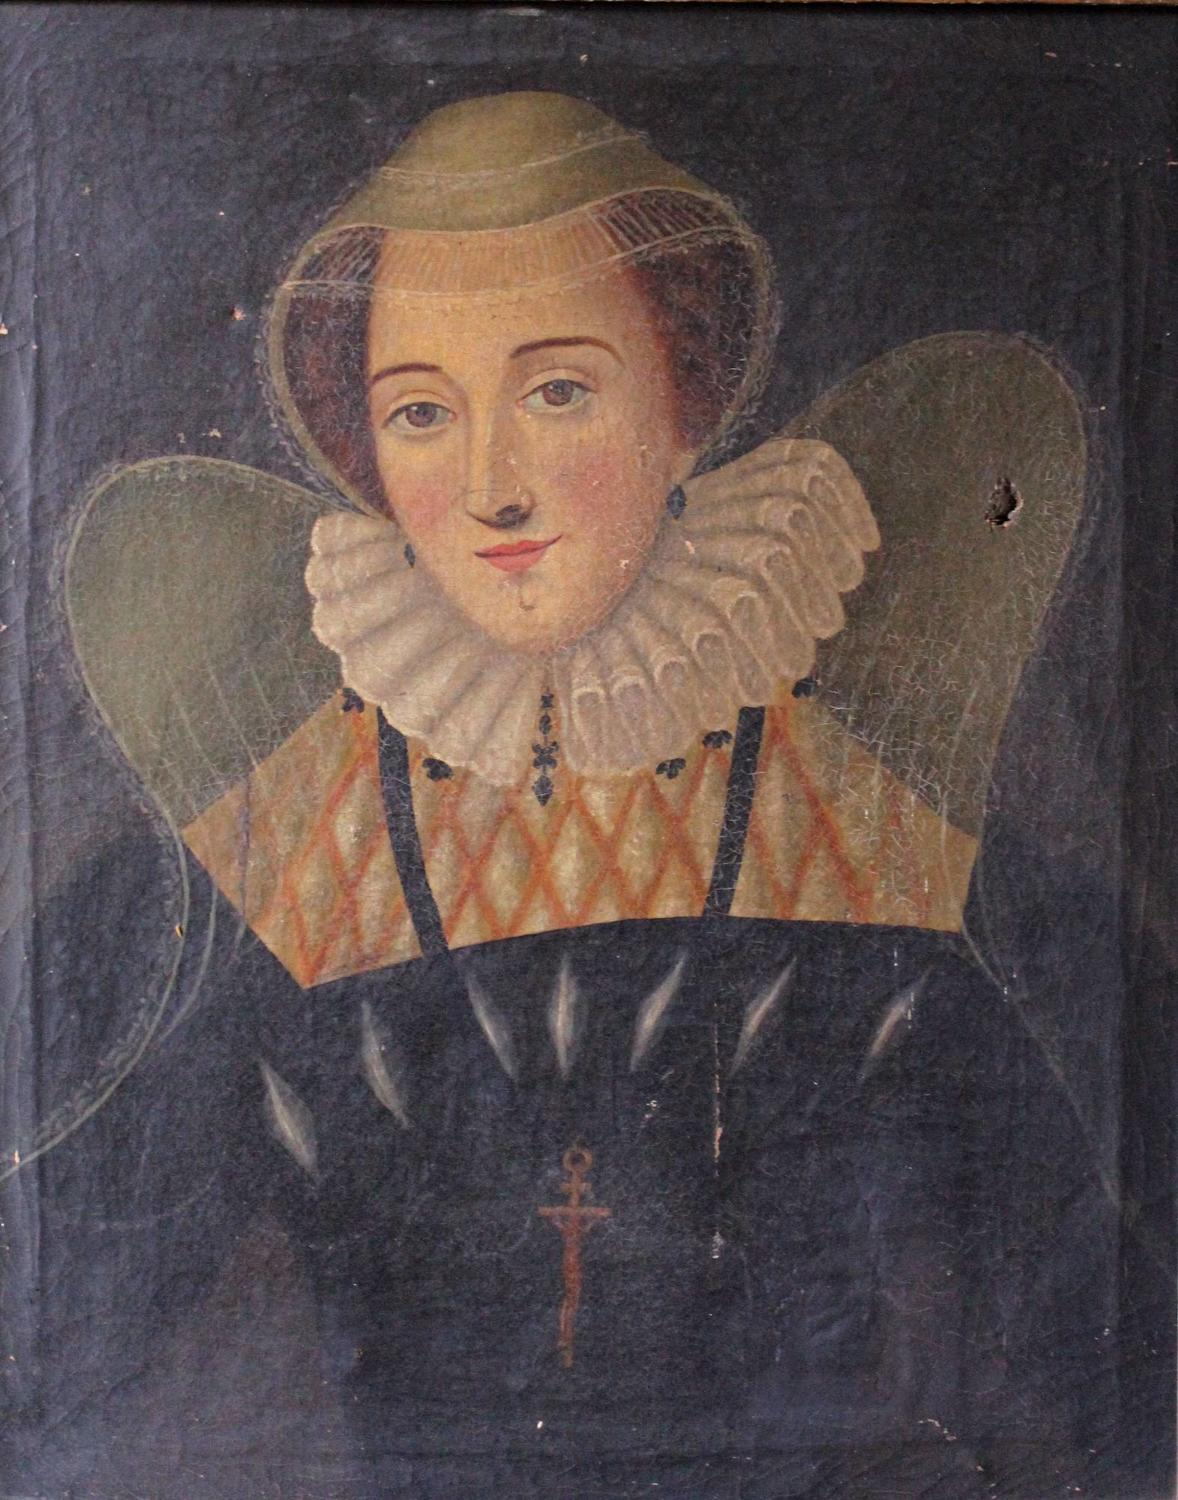 A Naive School Oil Portrait of Mary Queen of Scots